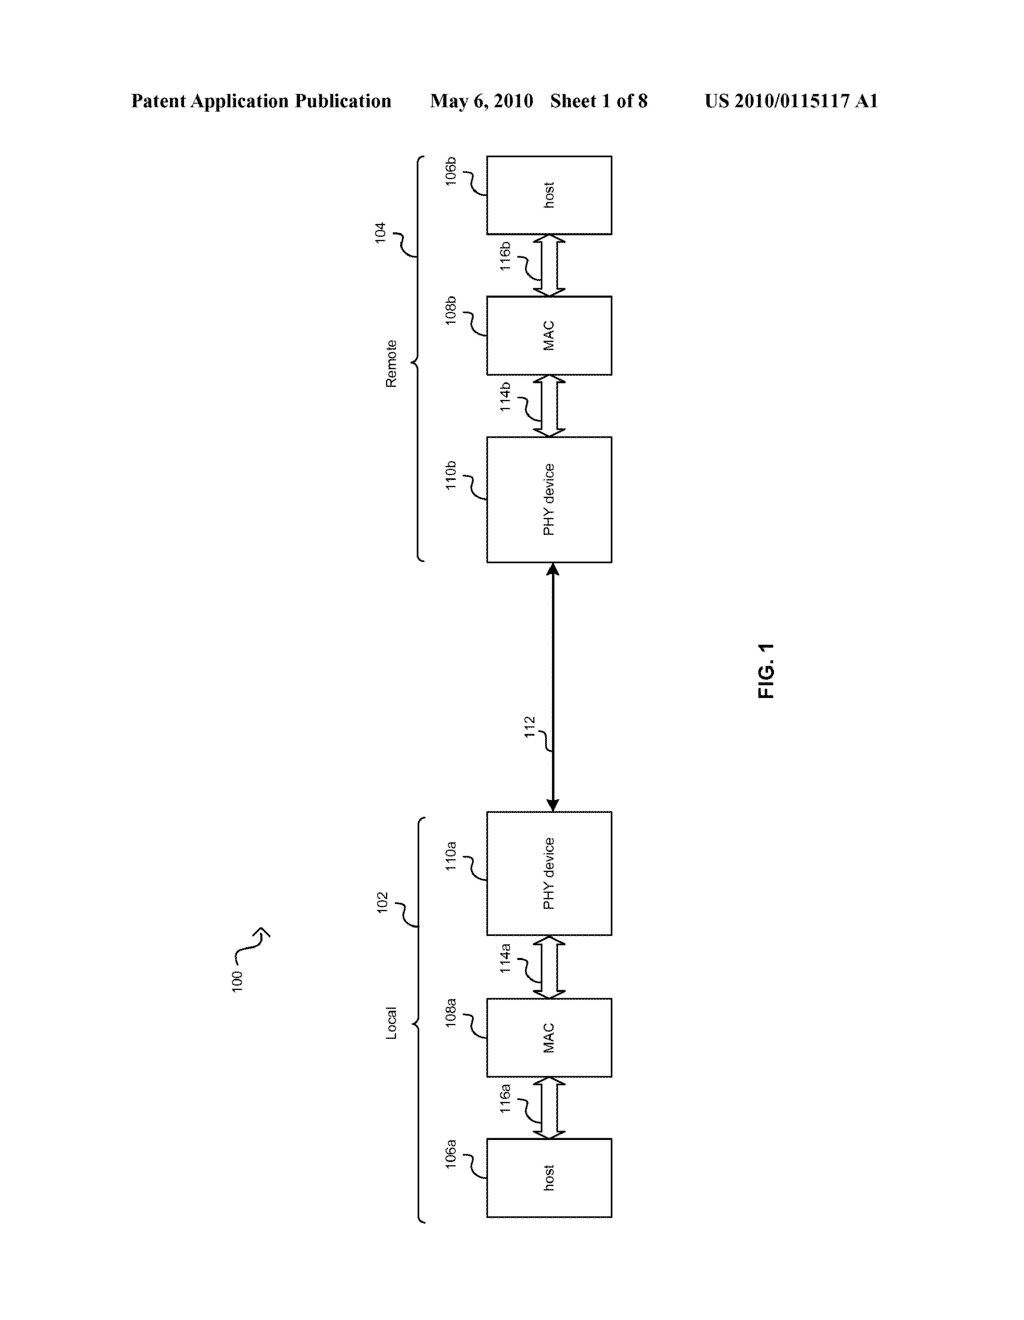 Method And System For Packet Based Signaling Between A MAC And A PHY To Manage Energy Efficient Network Devices And/Or Protocols - diagram, schematic, and image 02